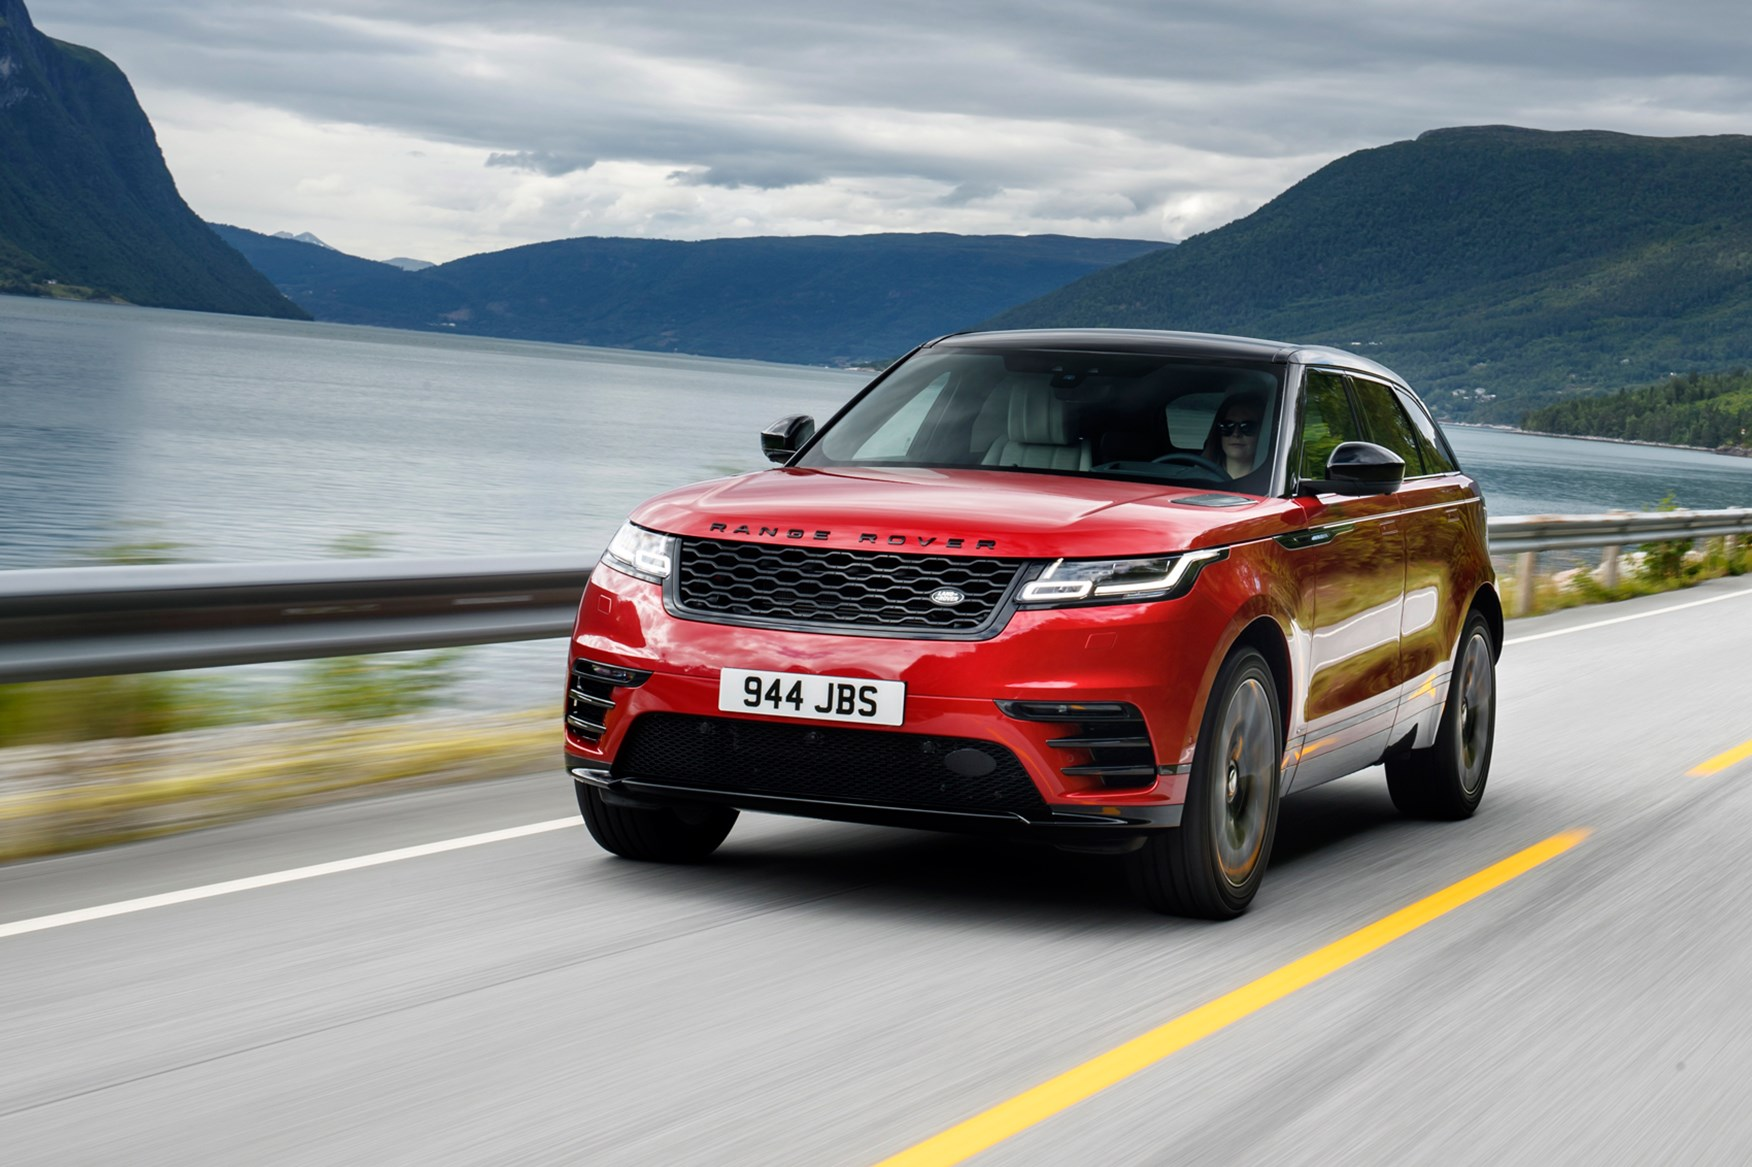 Range Rover Velar (2017) review by CAR Magazine